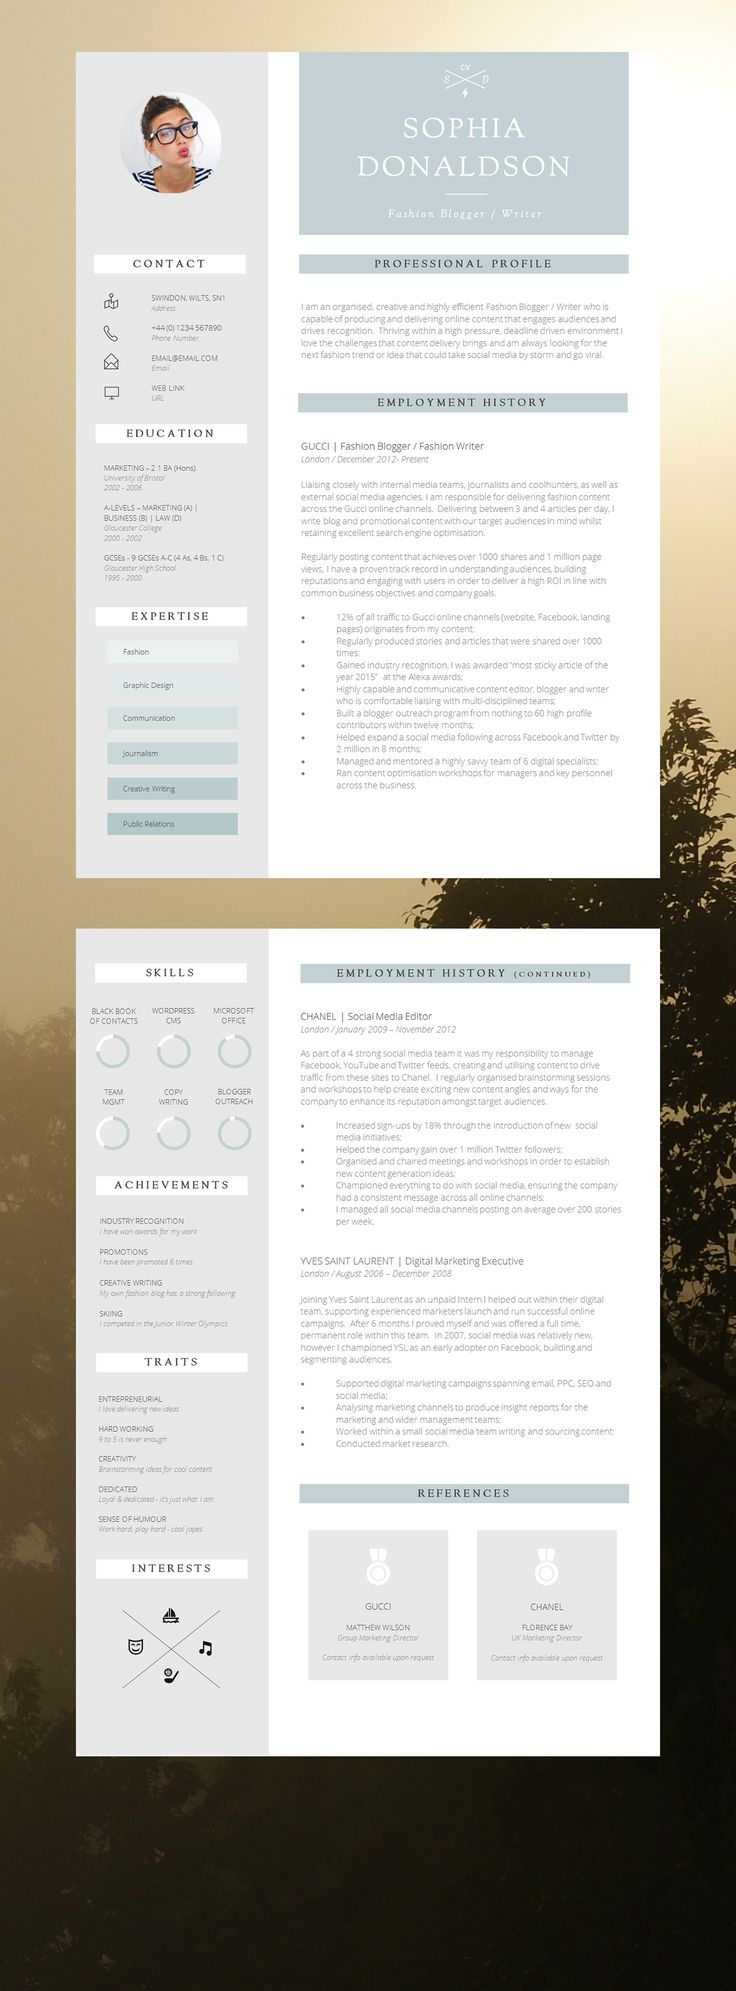 infographic cv template modern cv design dont underestimate the power of a professional image description cv template modern cv design dont un. Resume Example. Resume CV Cover Letter